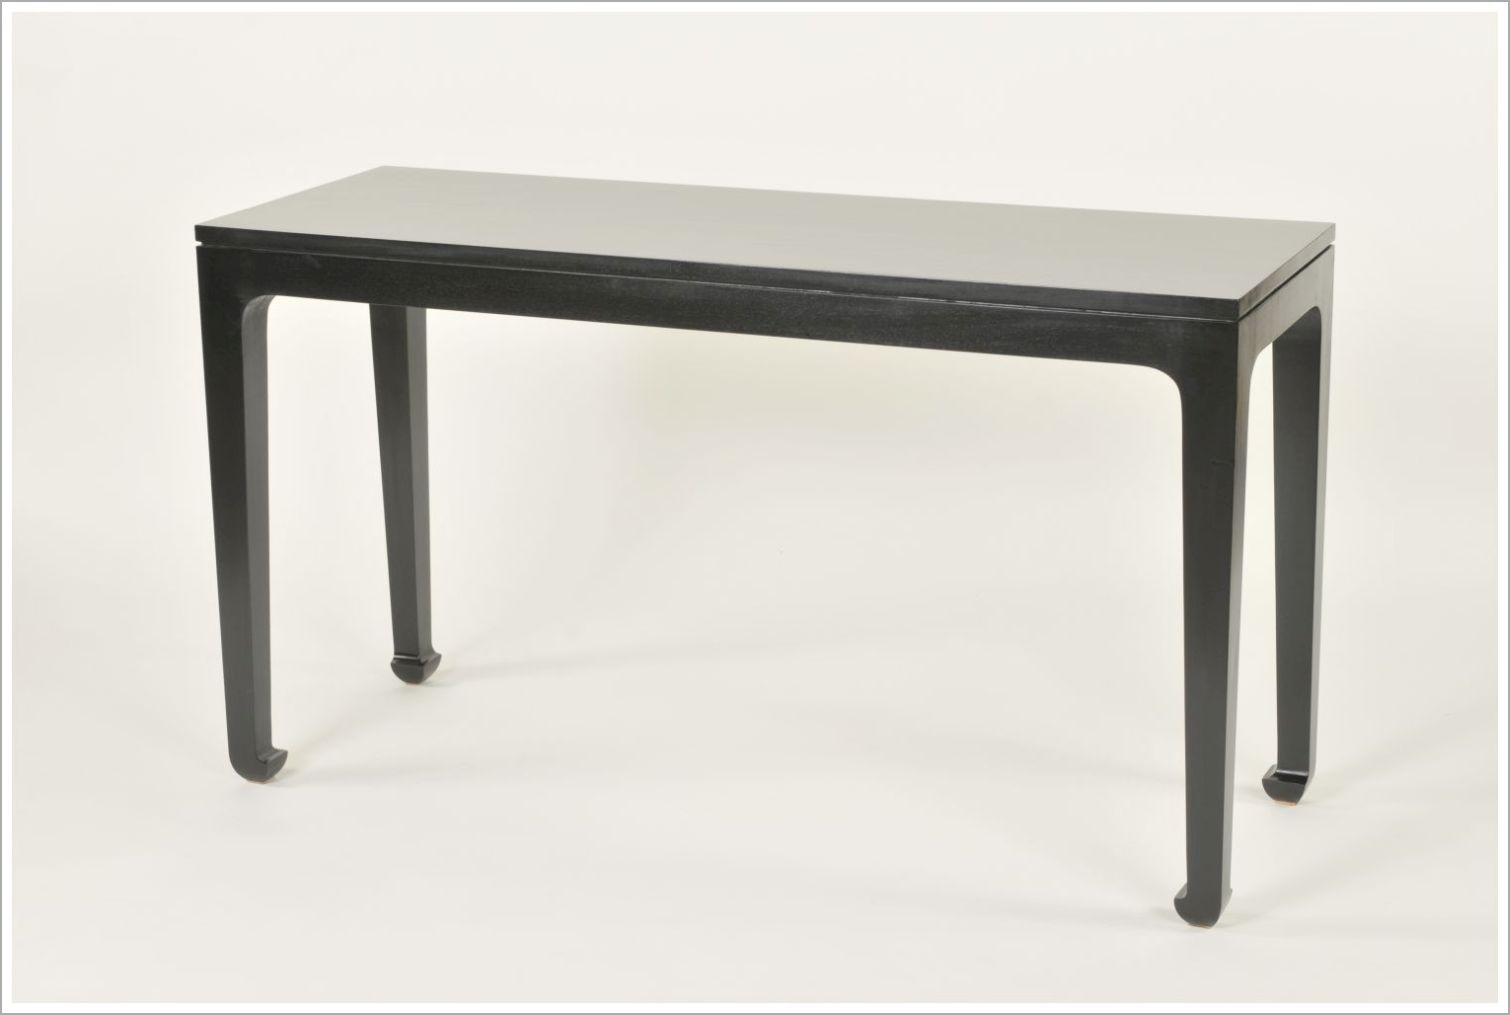 Custom Hotel Console Table with Black Finish